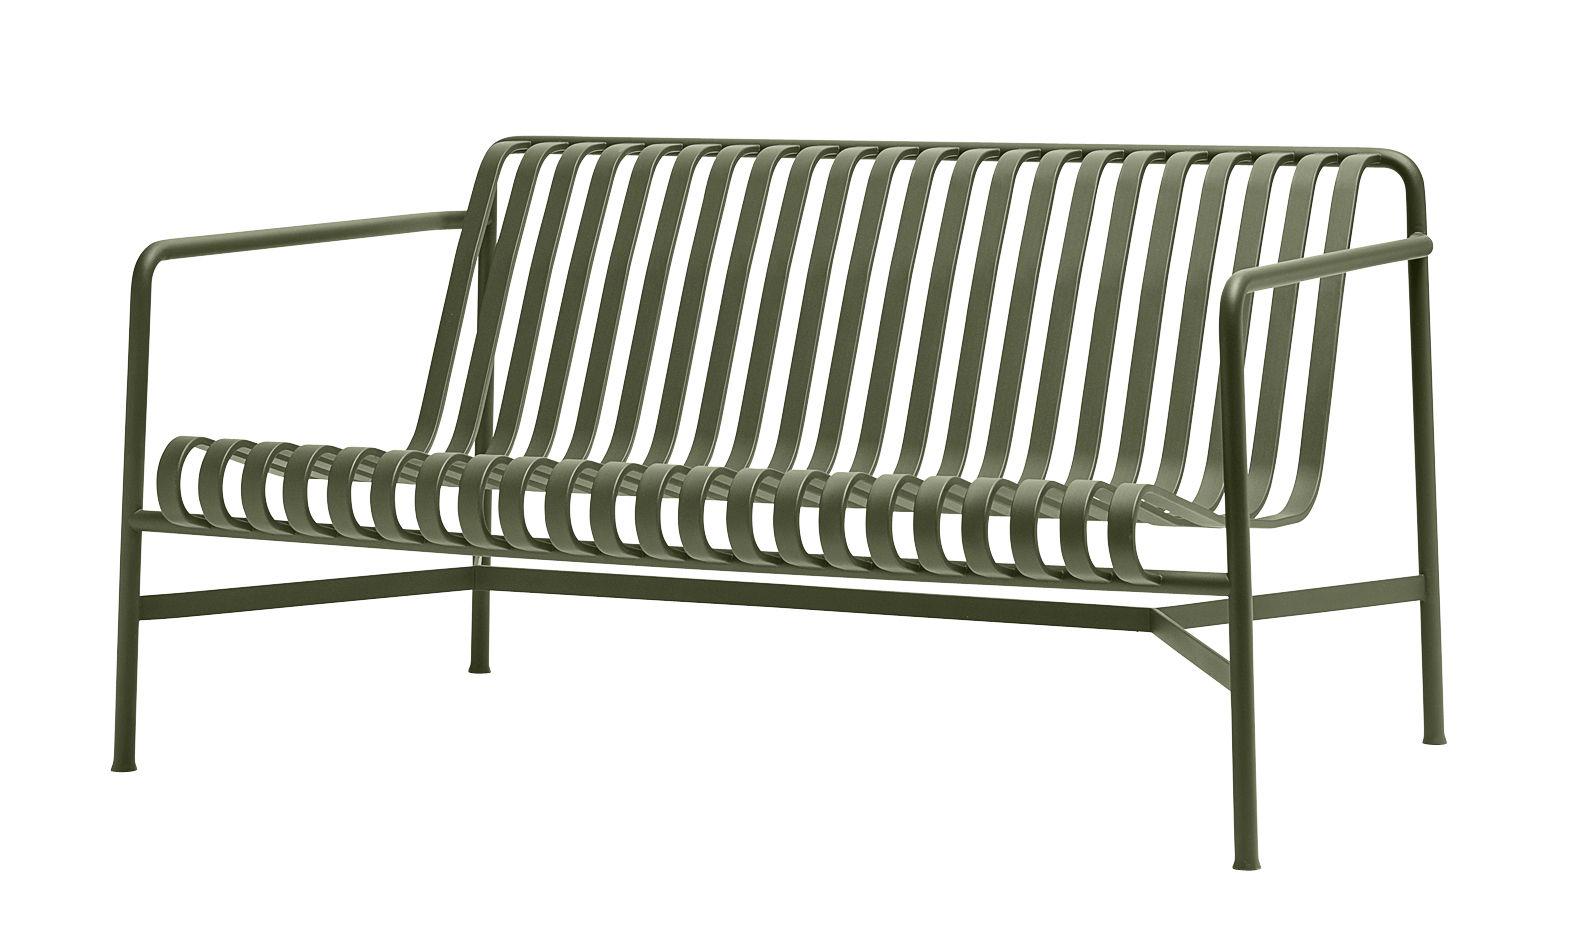 Outdoor - Sofas - Palissade Lounge Straight sofa - W 139 cm - R & E Bouroullec by Hay - Olive green - Electro galvanized steel, Peinture époxy